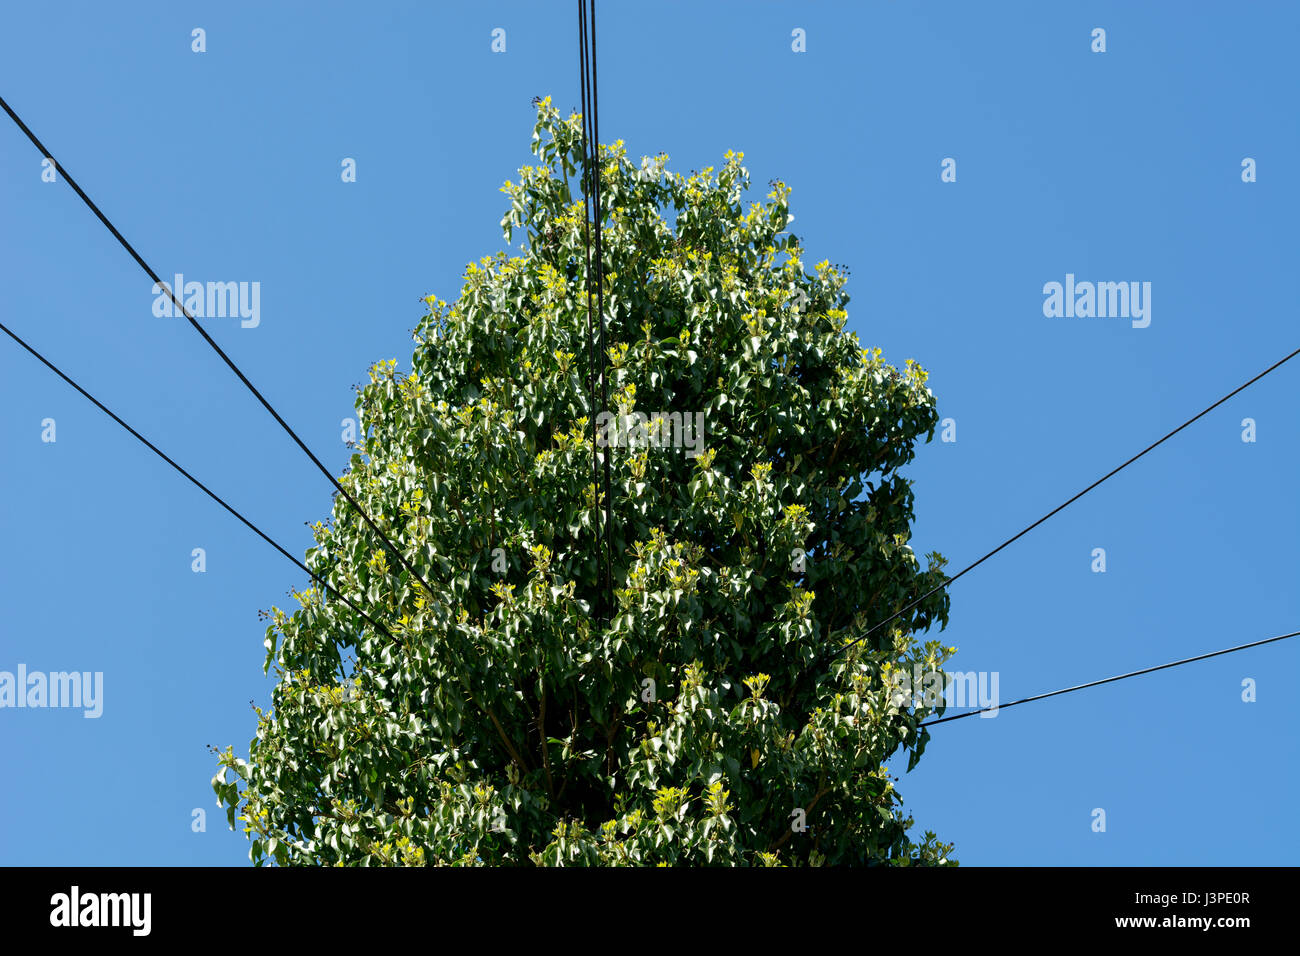 An ivy covered telegraph pole, Warwickshire, UK - Stock Image